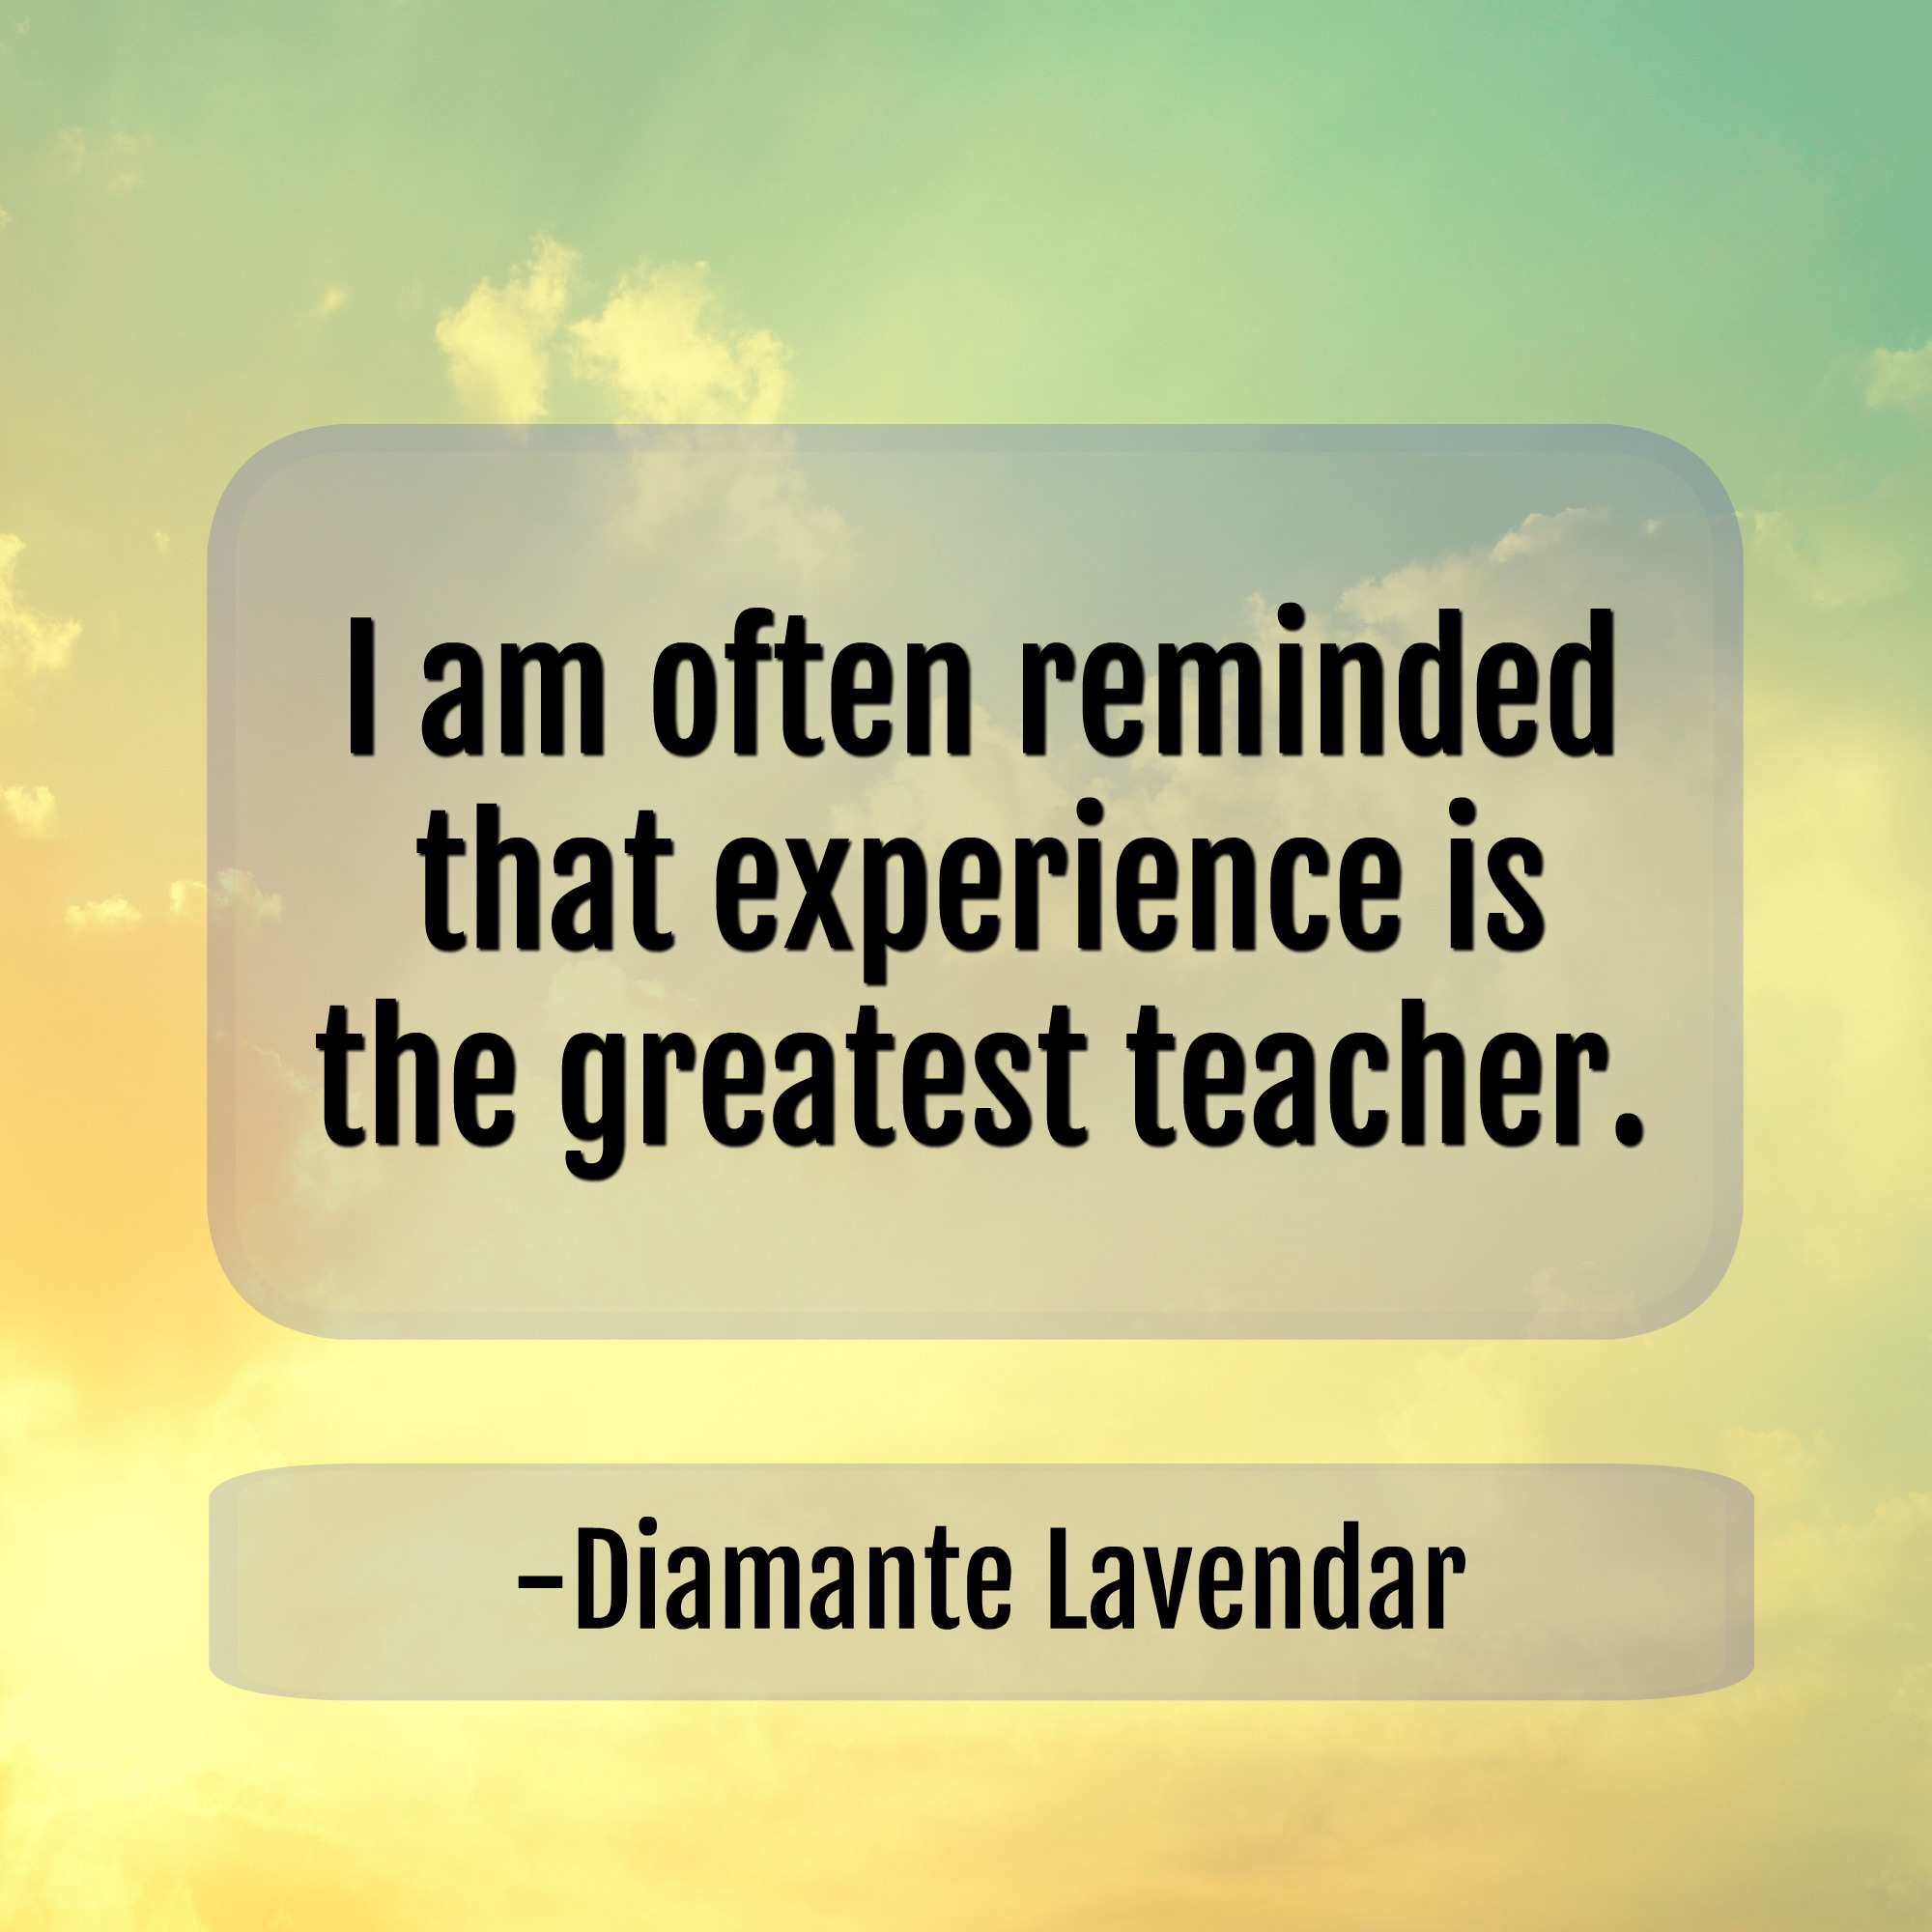 Experience is the greatest teacher by Diamante Lavendar.jpg